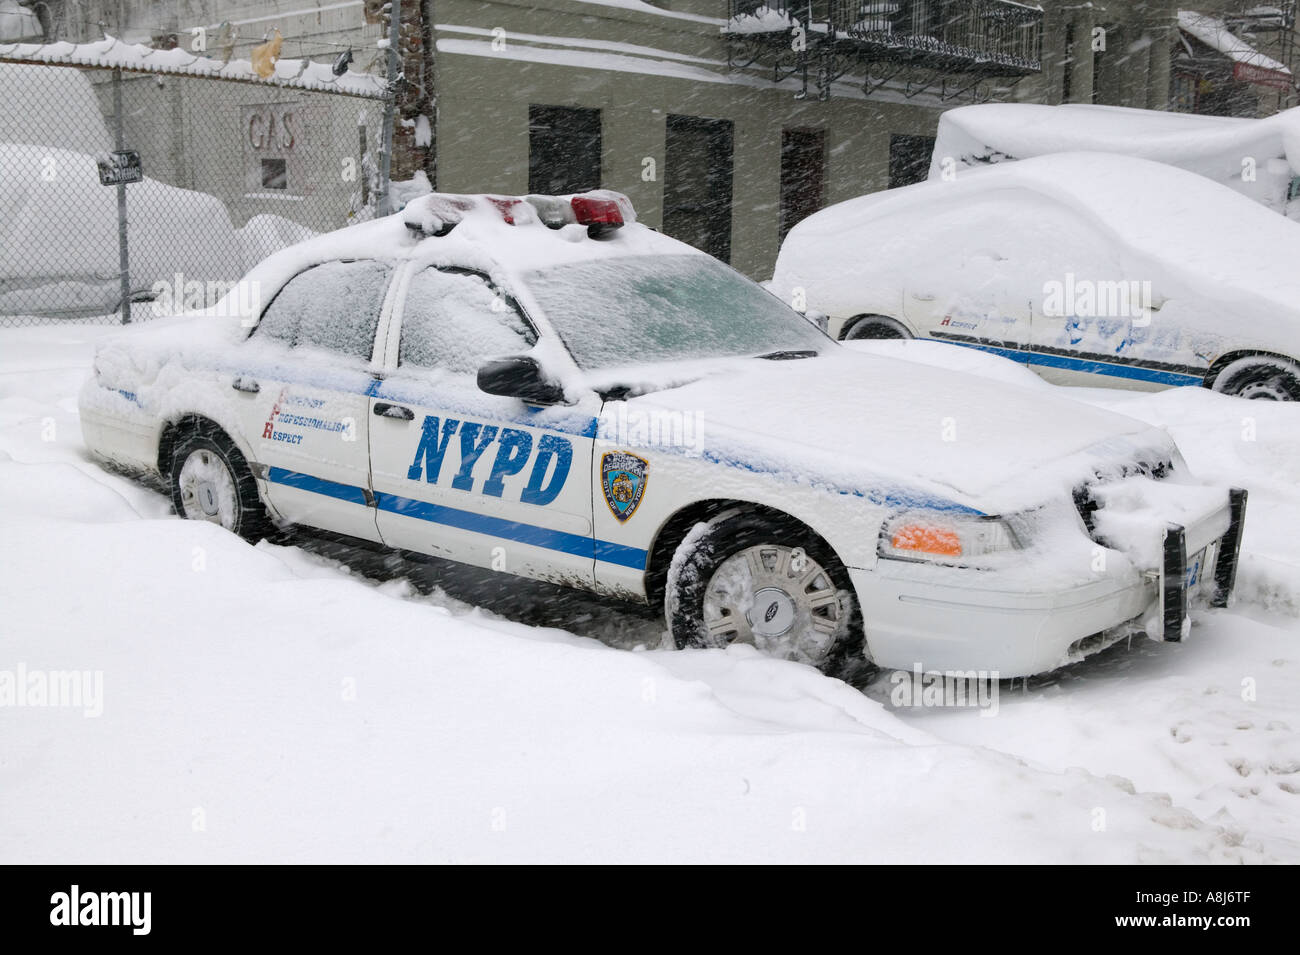 An Nypd Cruiser Sits Covered In Snow During A Storm In New York City Usa February